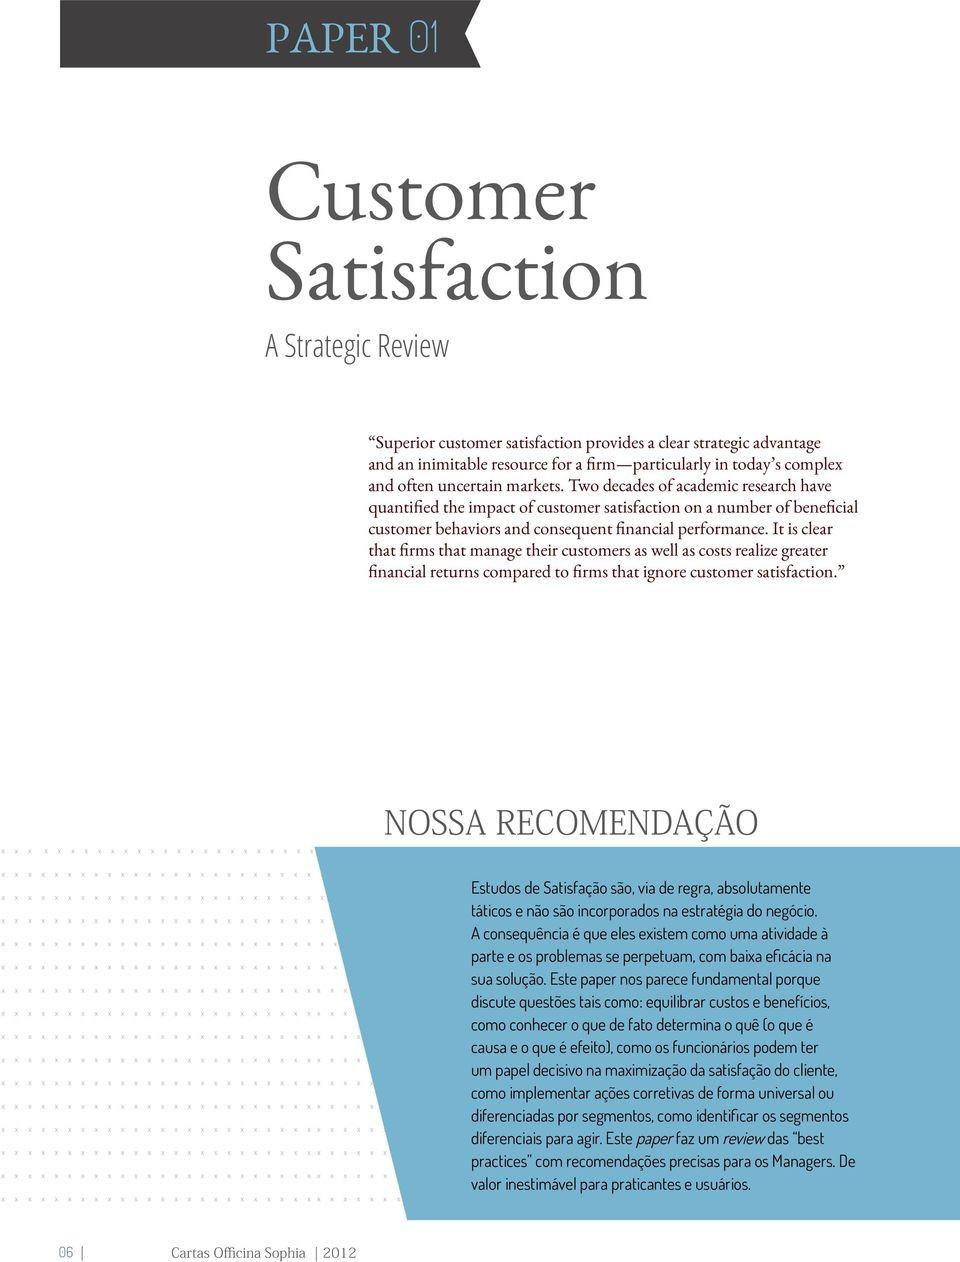 It is clear that firms that manage their customers as well as costs realize greater financial returns compared to firms that ignore customer satisfaction.